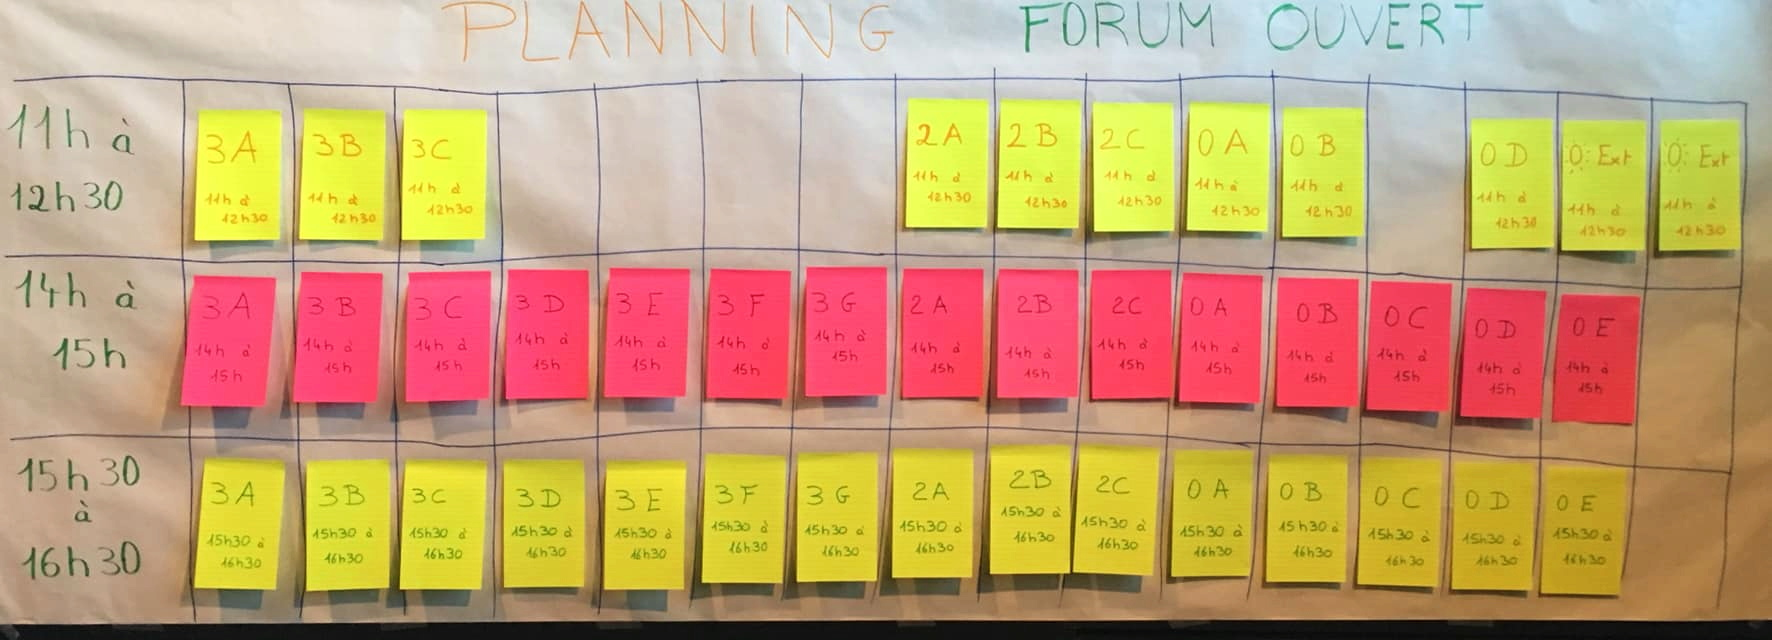 4 Forum ouvert planning